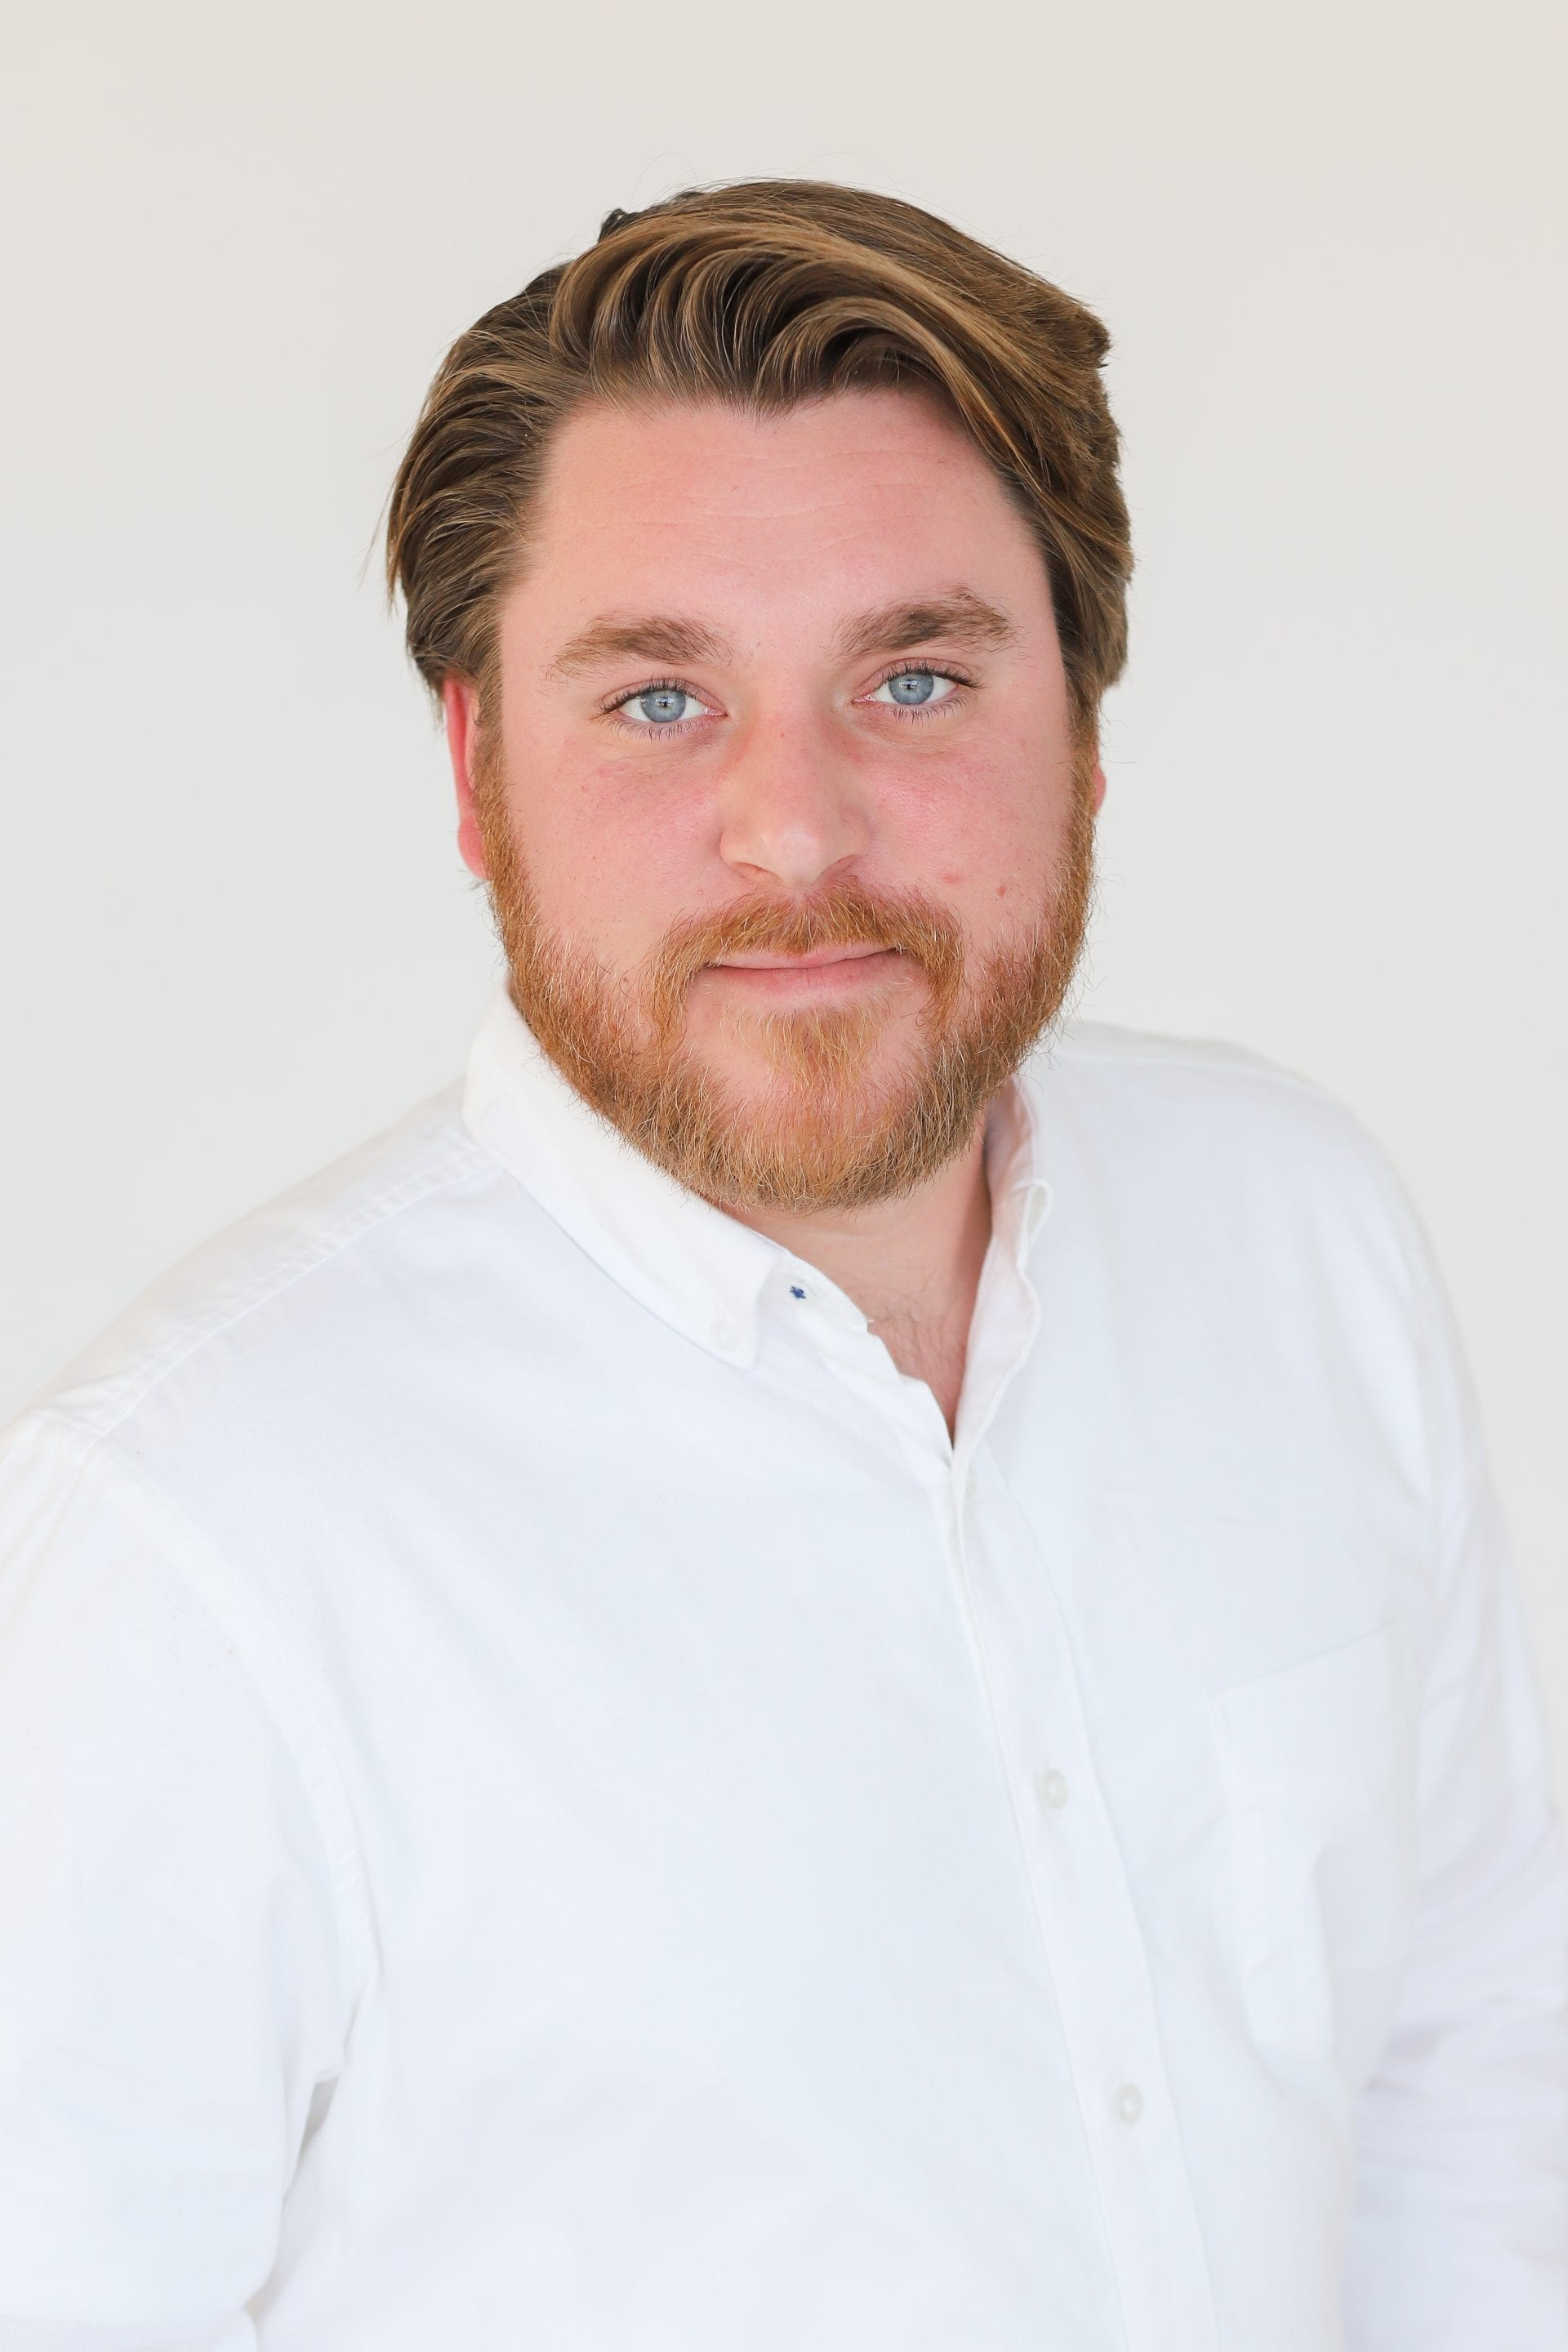 Shawn Minchey is a project manager at Millennial Design and brings a lot of new home construction experience and craftsmanship to the team. He has a passion for modern style homes, Property Evaluation, BIM Technology, and Home 3D models.